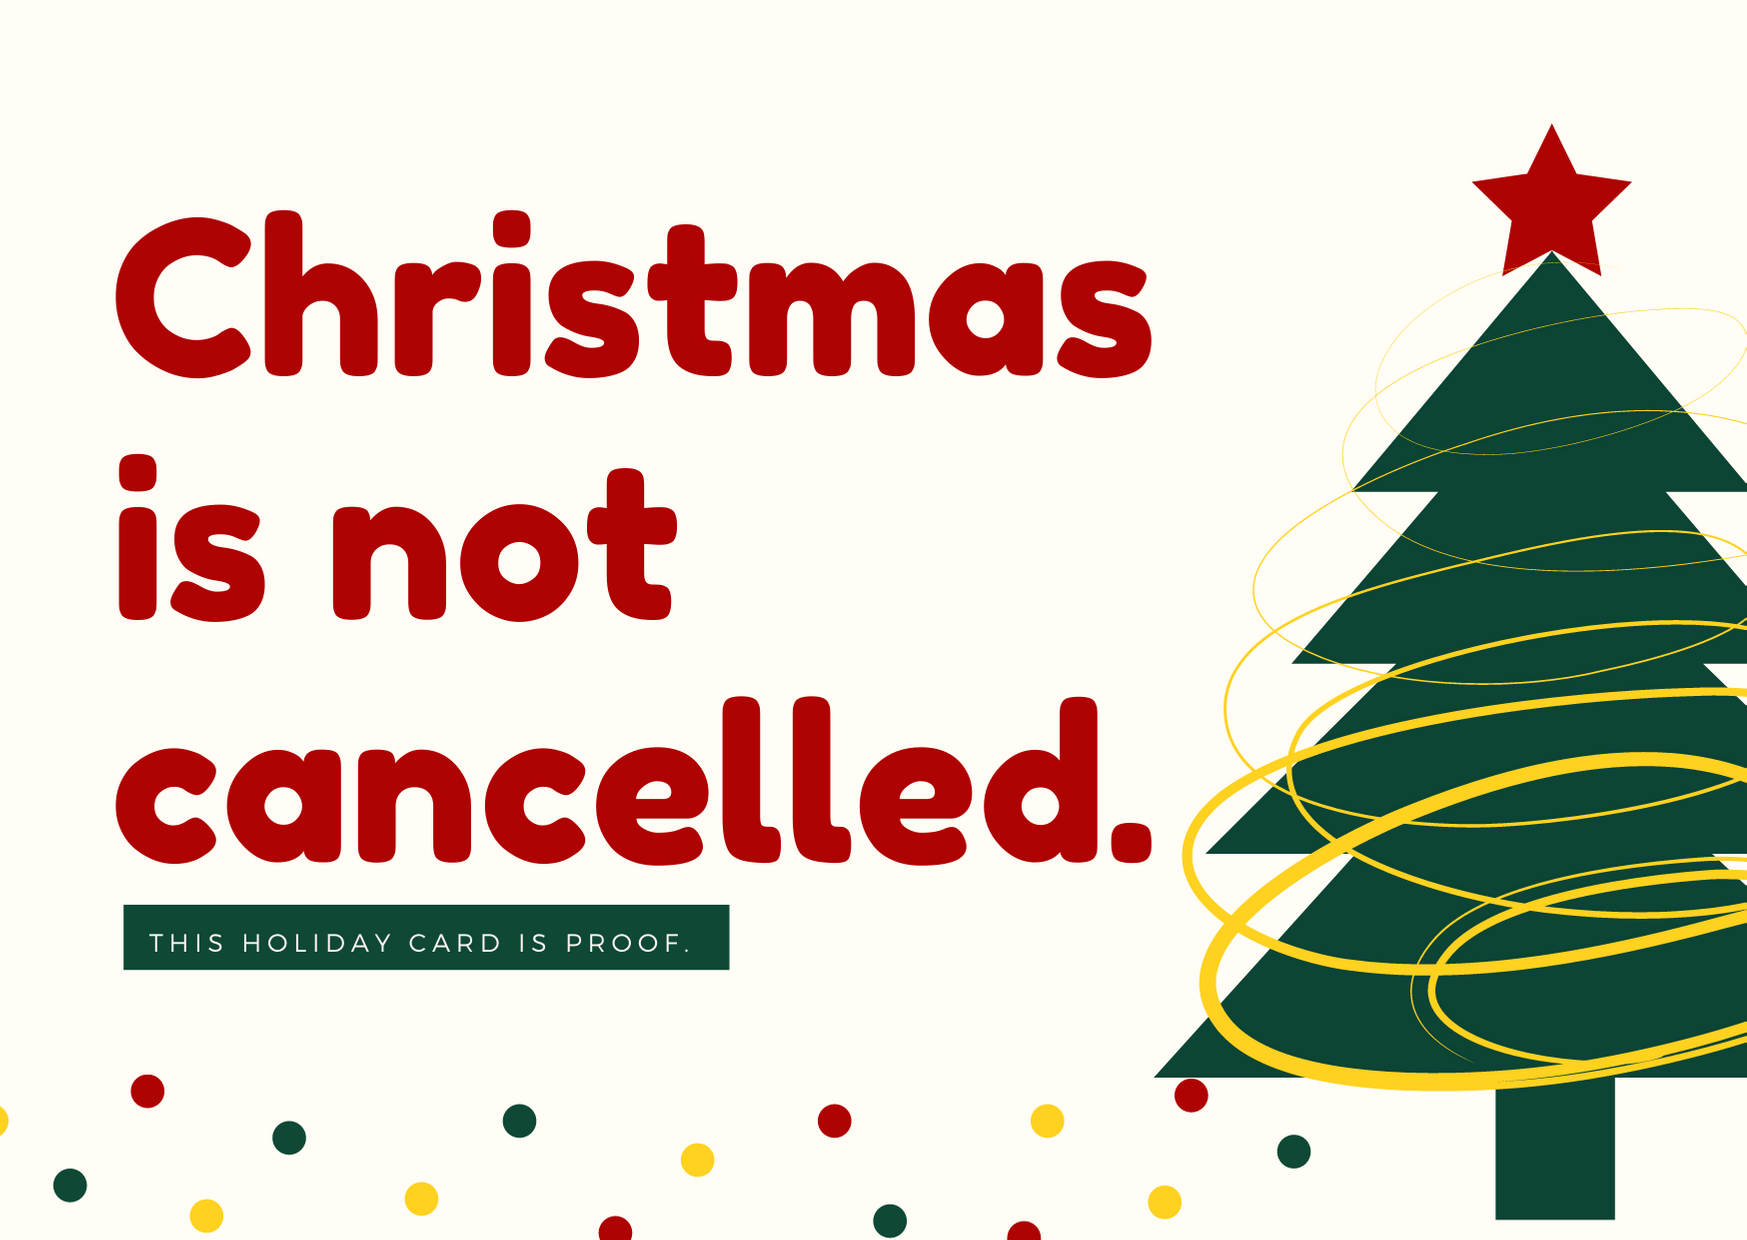 Christmas is not cancelled - 2